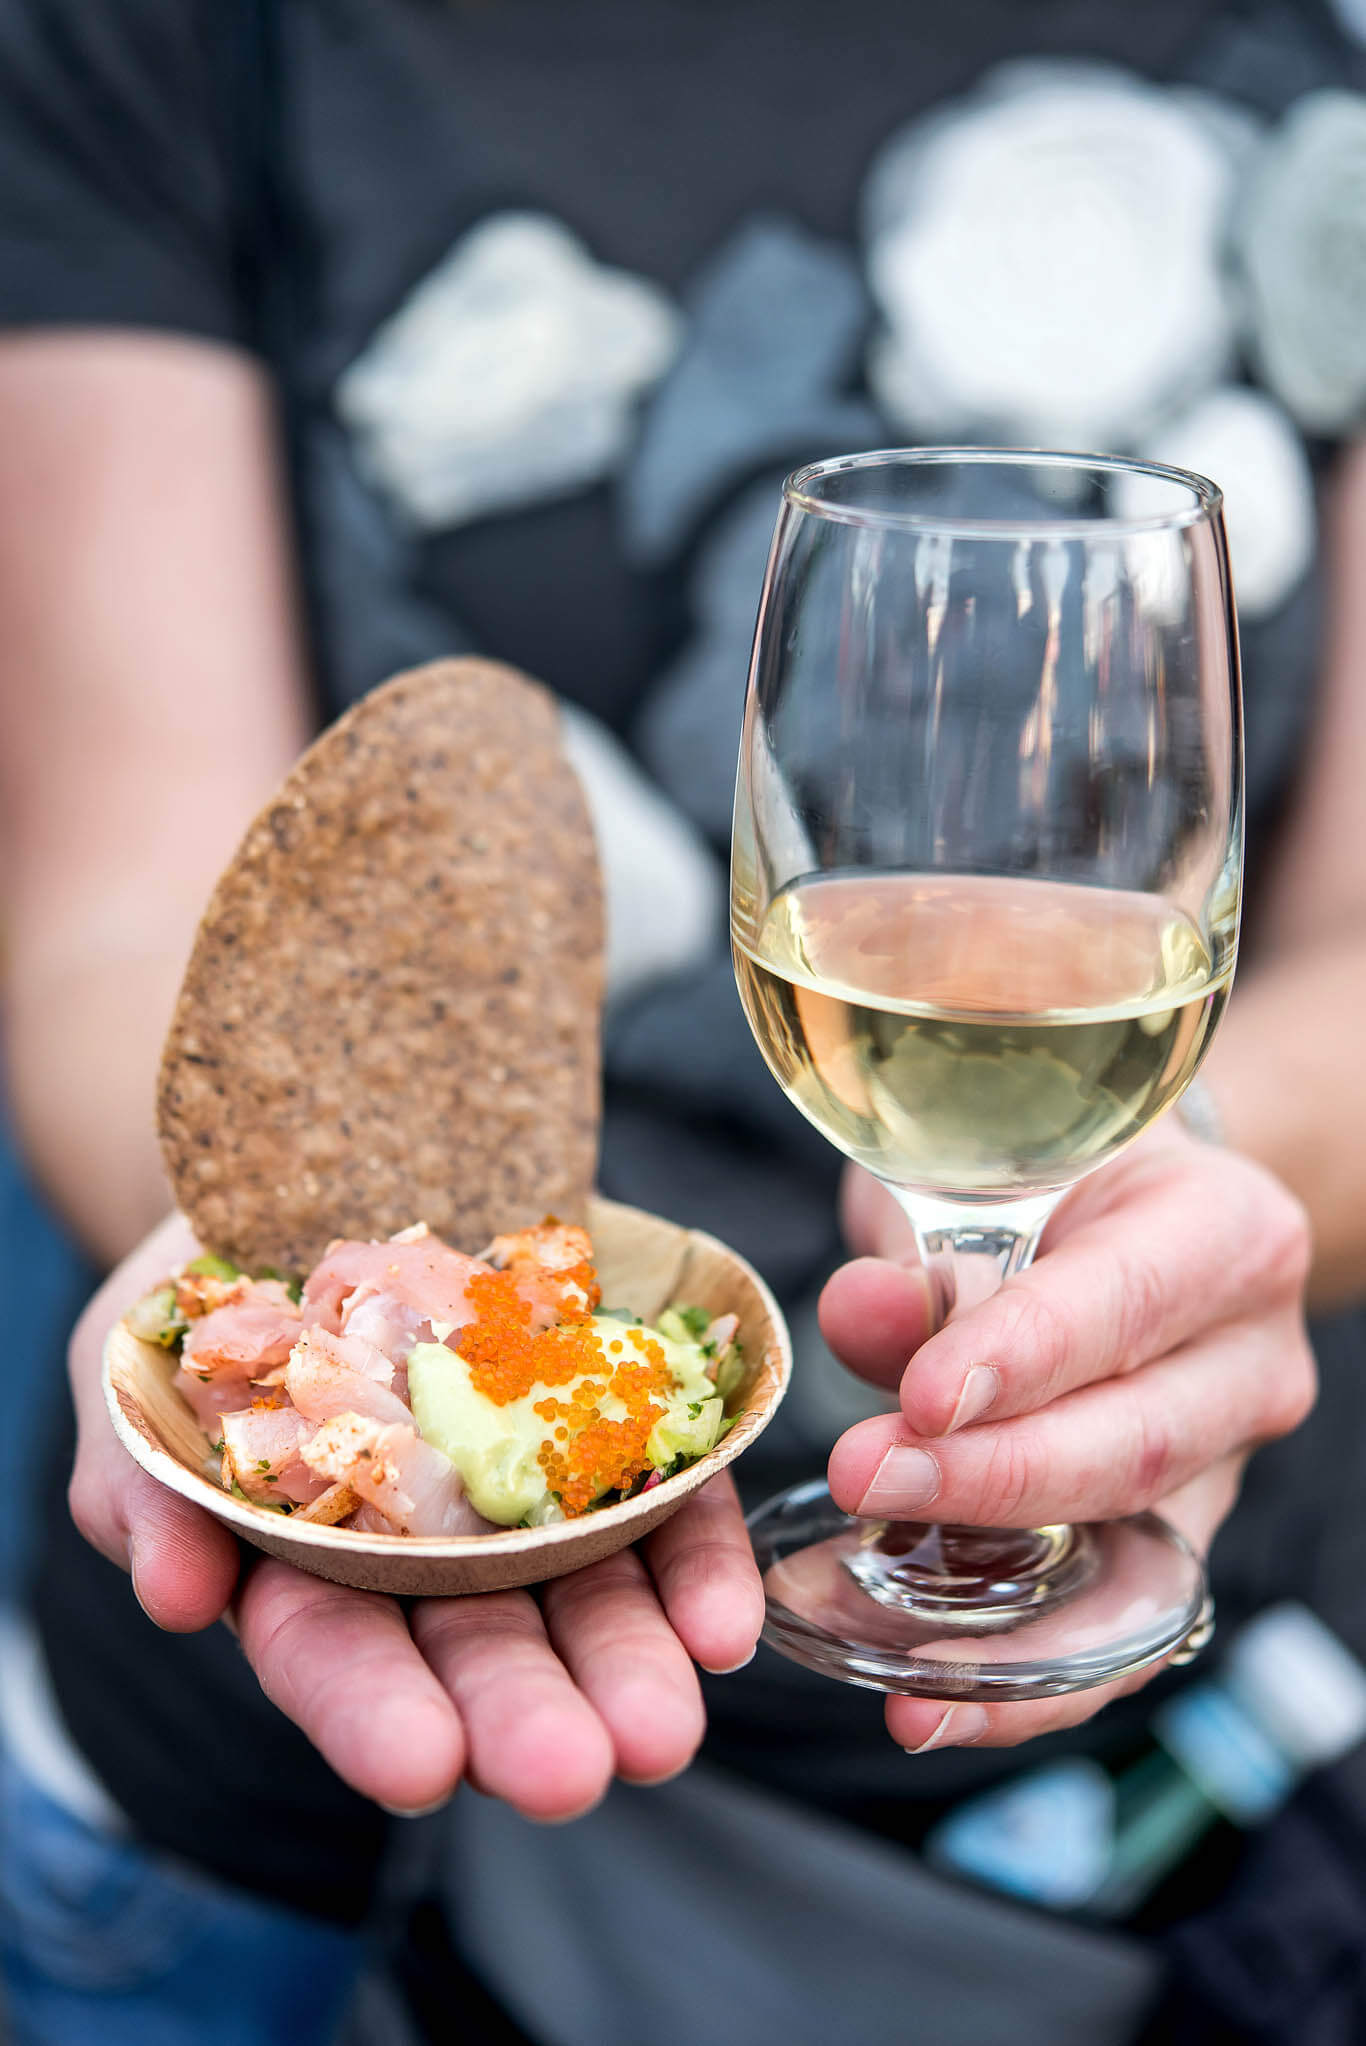 FEAST Portland - Hands holding glass of wine and small bite of ceviche